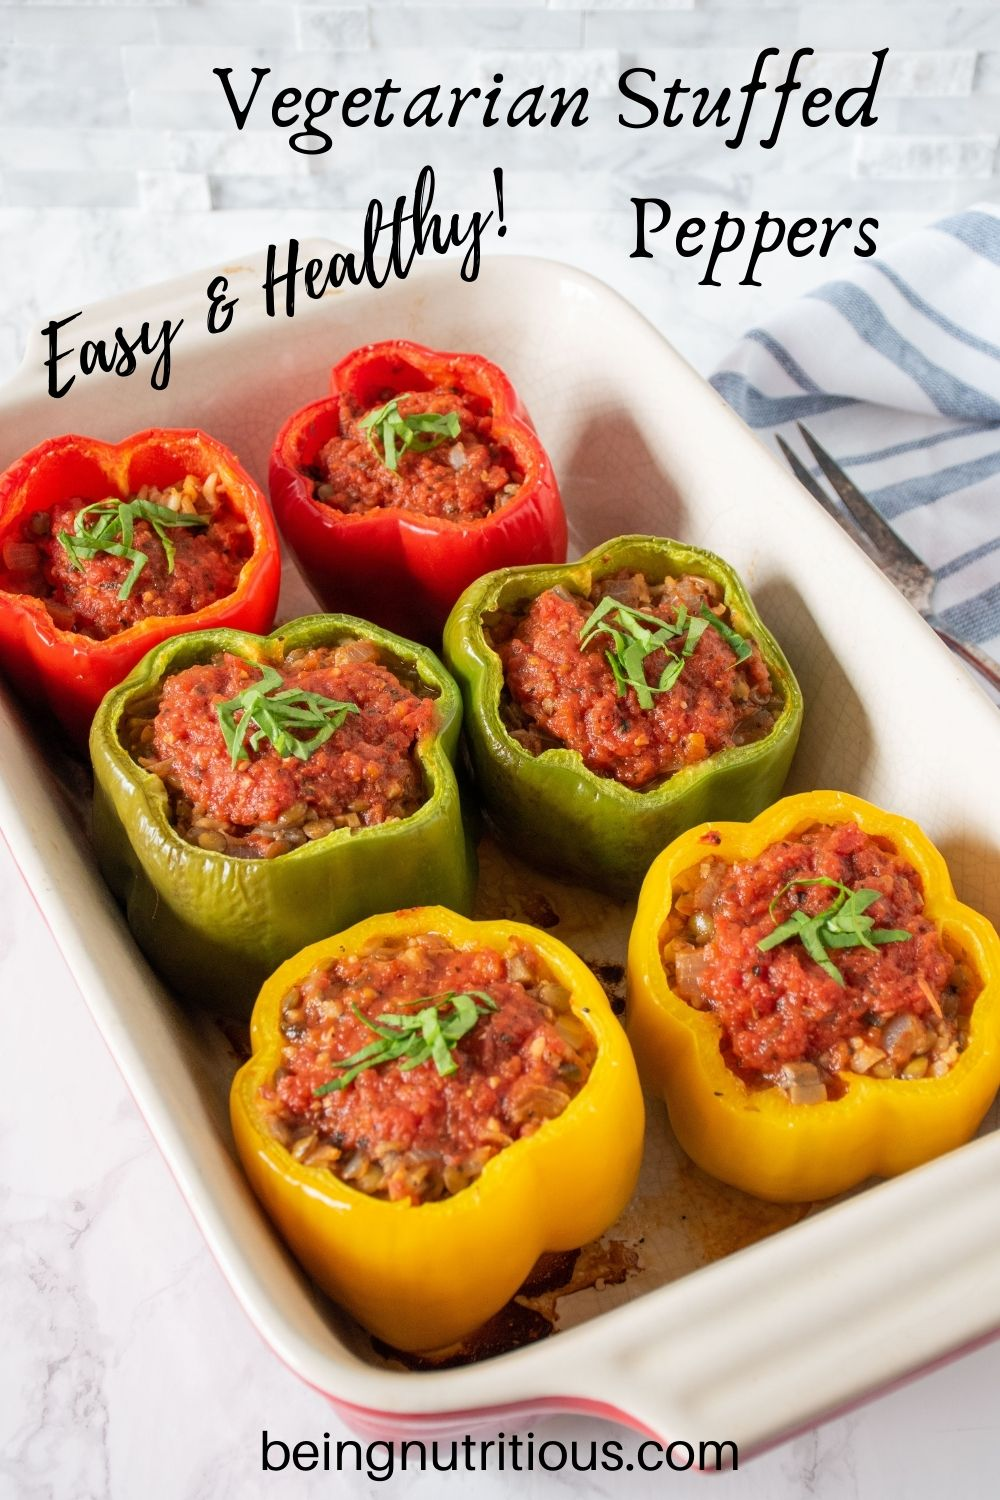 Baking pan, filled with 6 stuffed bell peppers. Text overlay: Vegetarian Stuffed Peppers, easy and healthy!